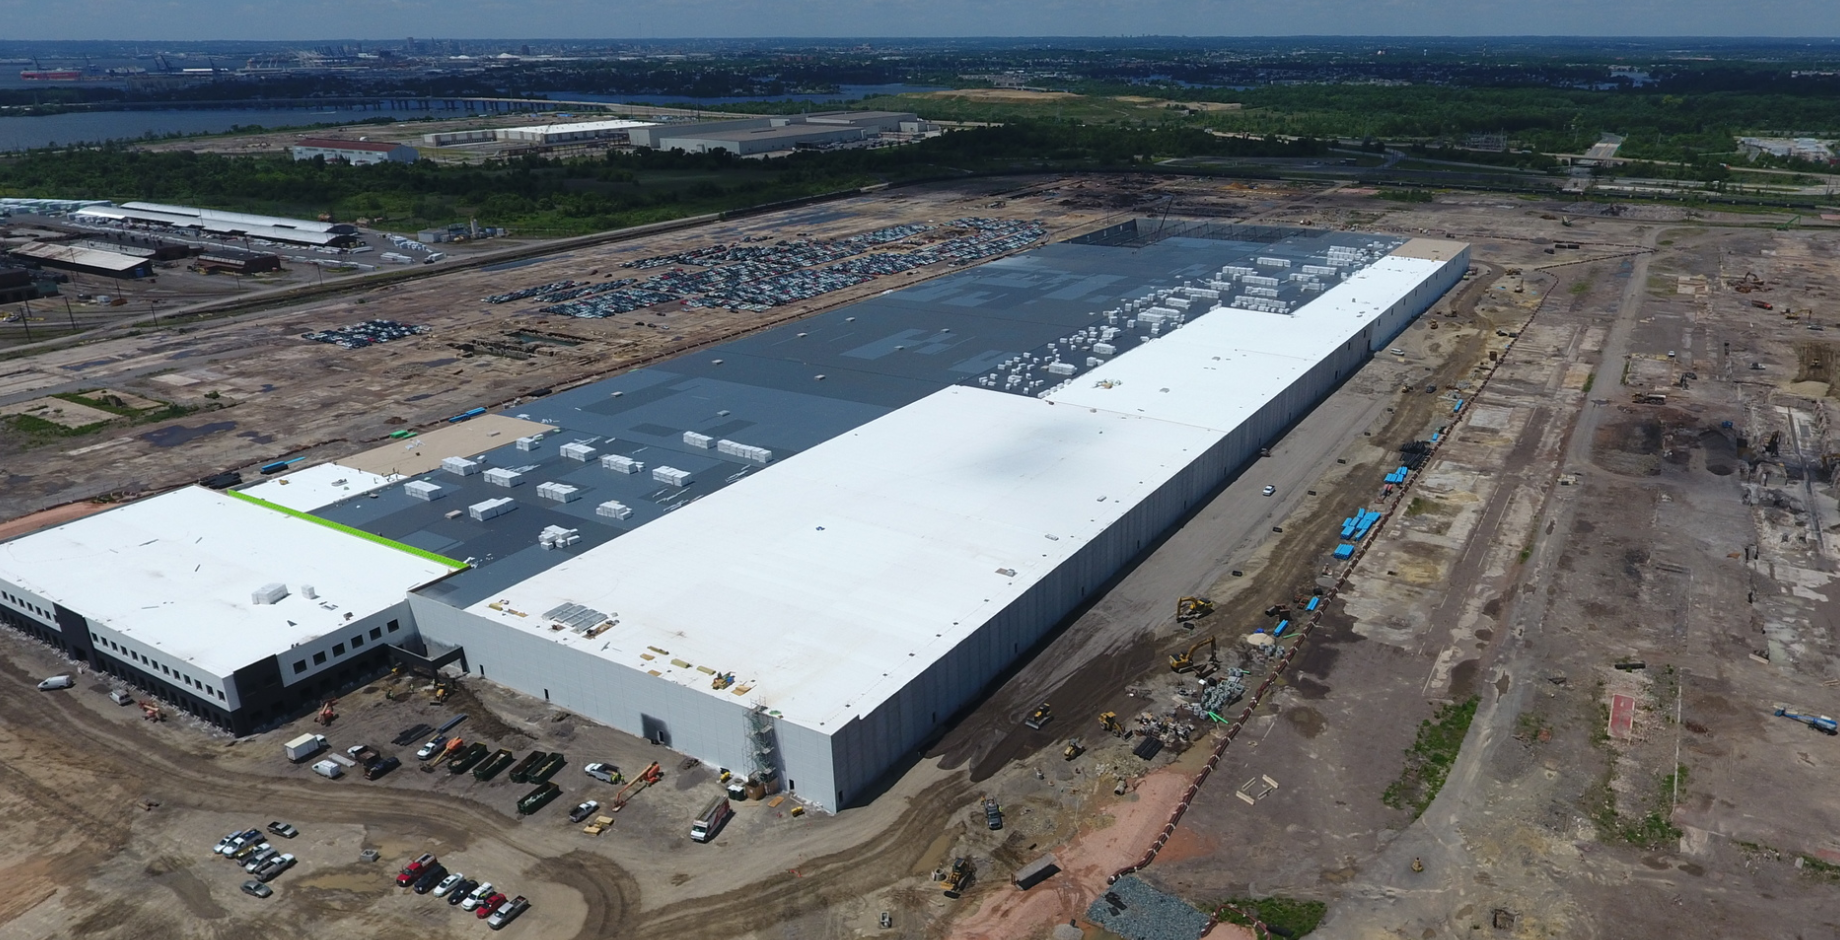 Commercial Roofing Contractor Flexes Its Muscles On 1 3 Million